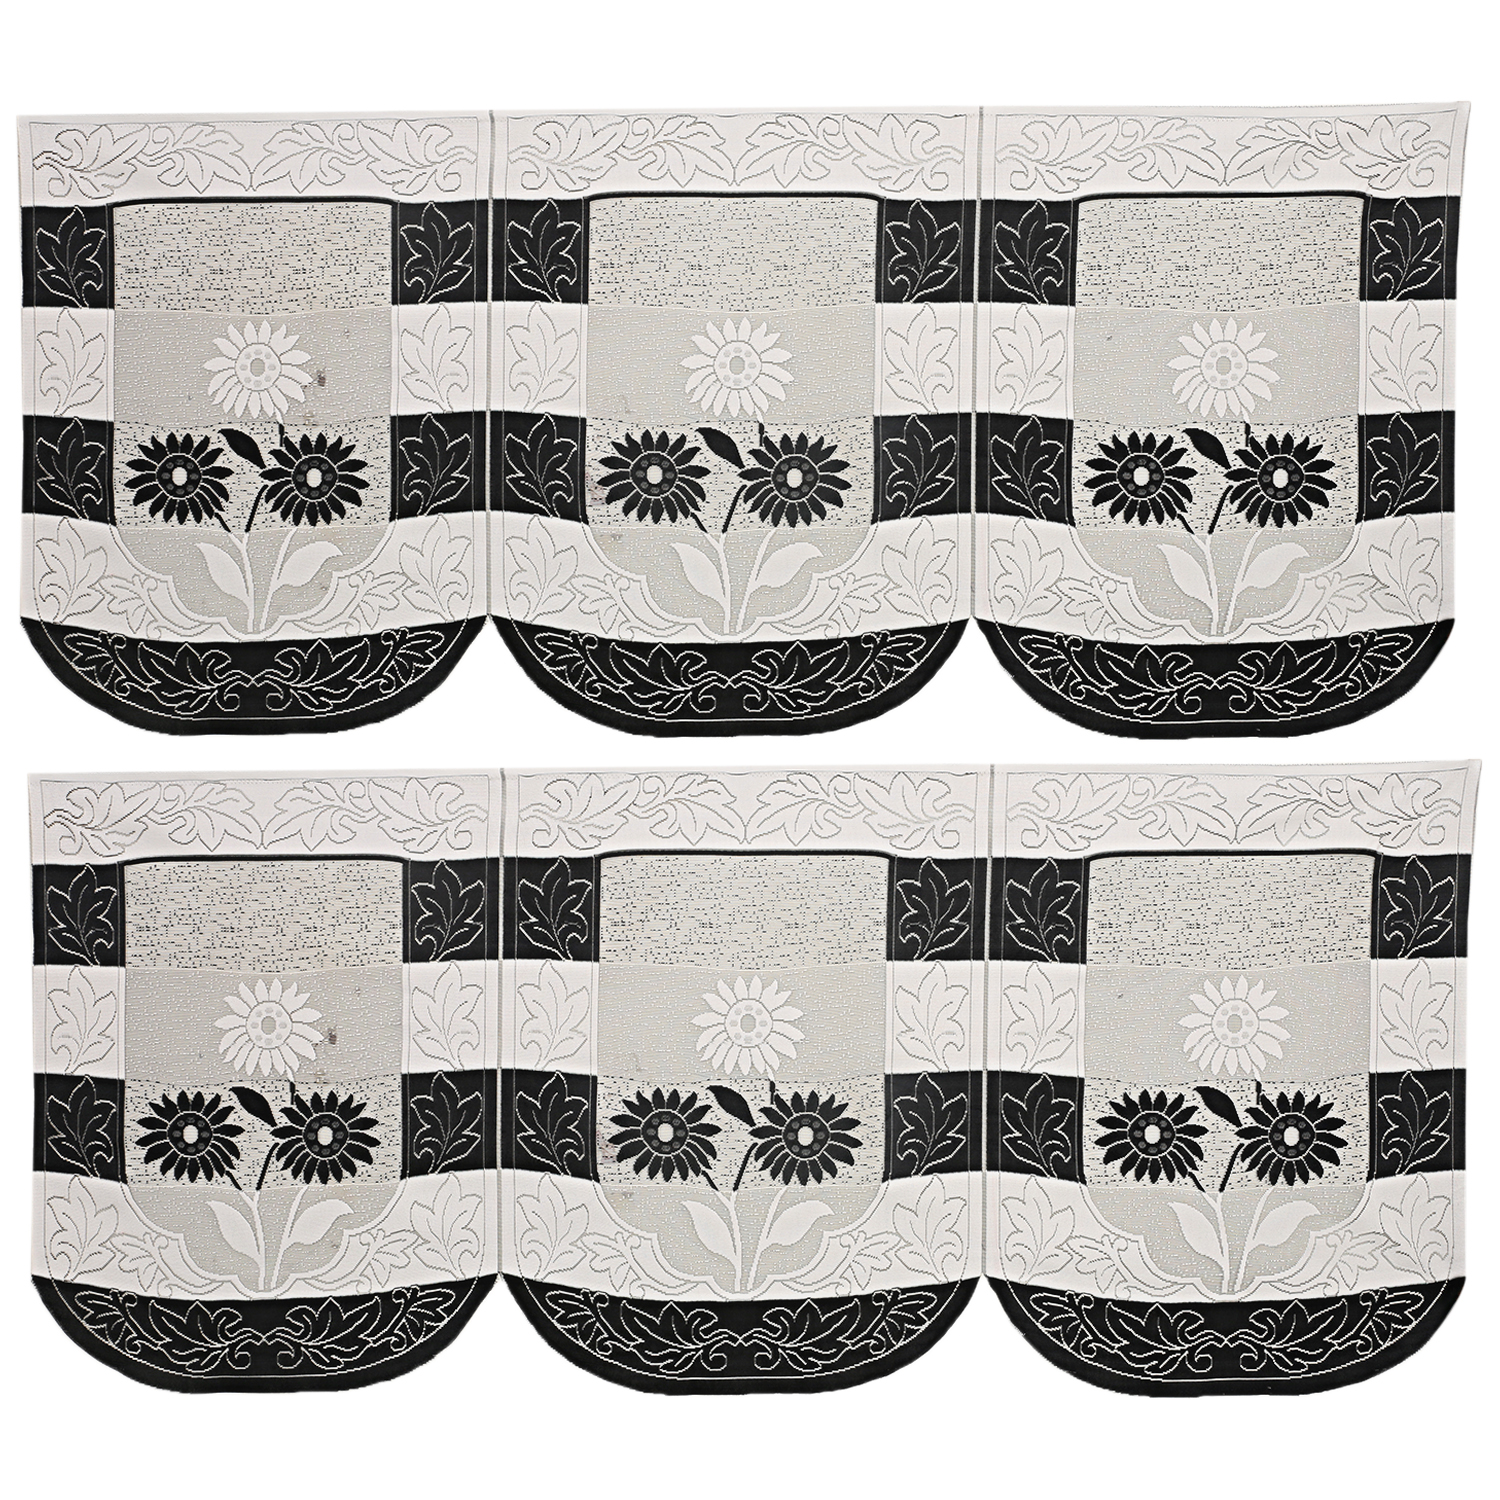 Kuber Inudustries Cotton 6 Pieces 5 Seater Sofa Cover Set (Black & White)-CTKTC3480